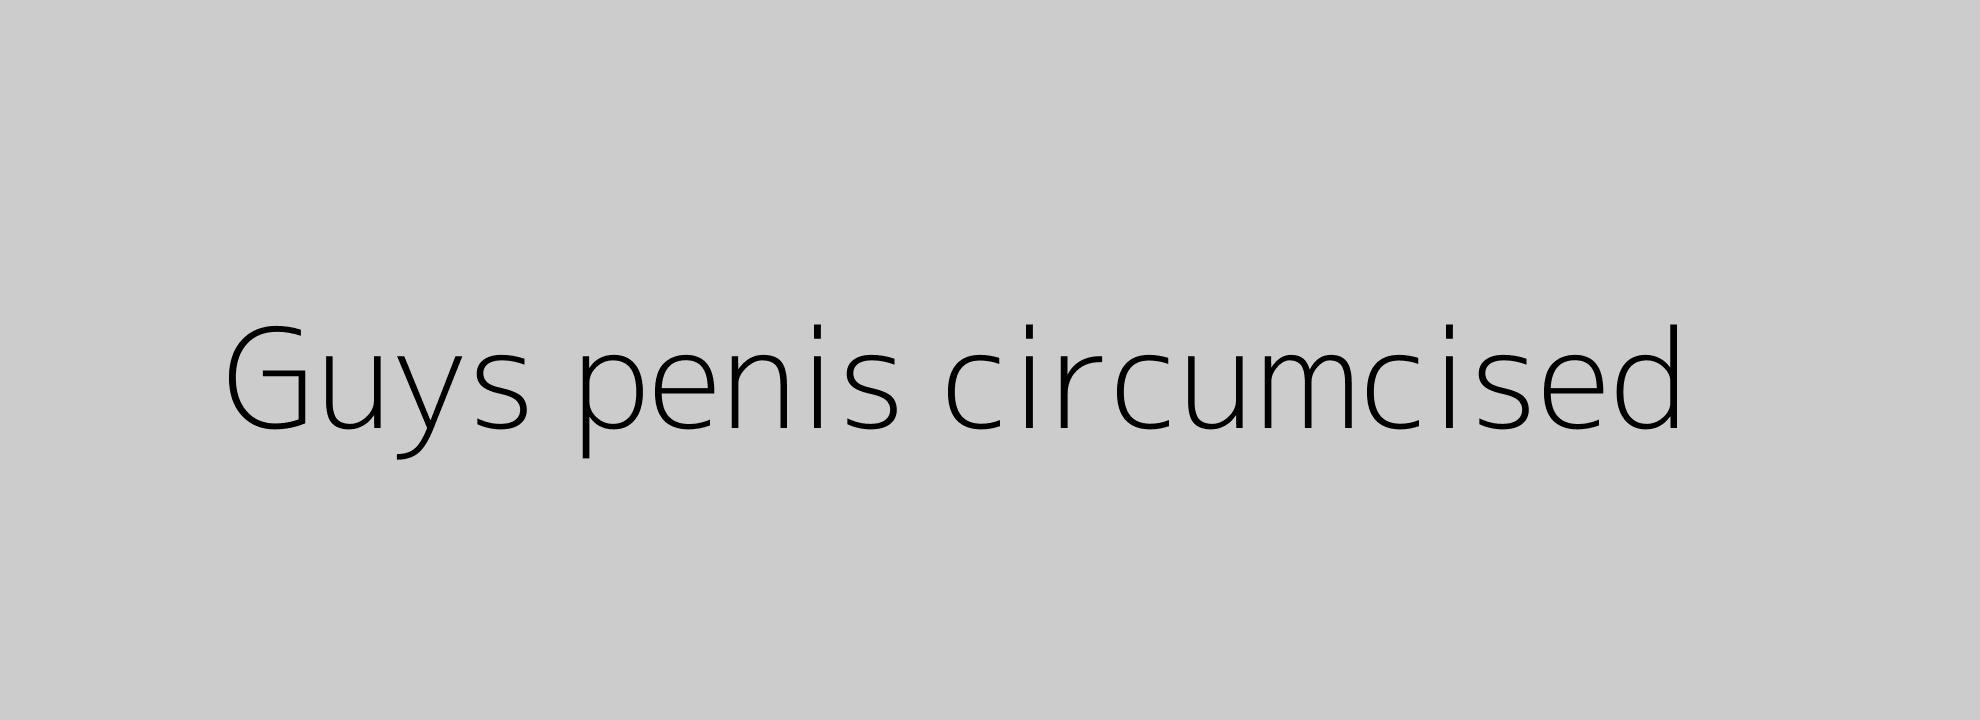 Guys penis circumcised